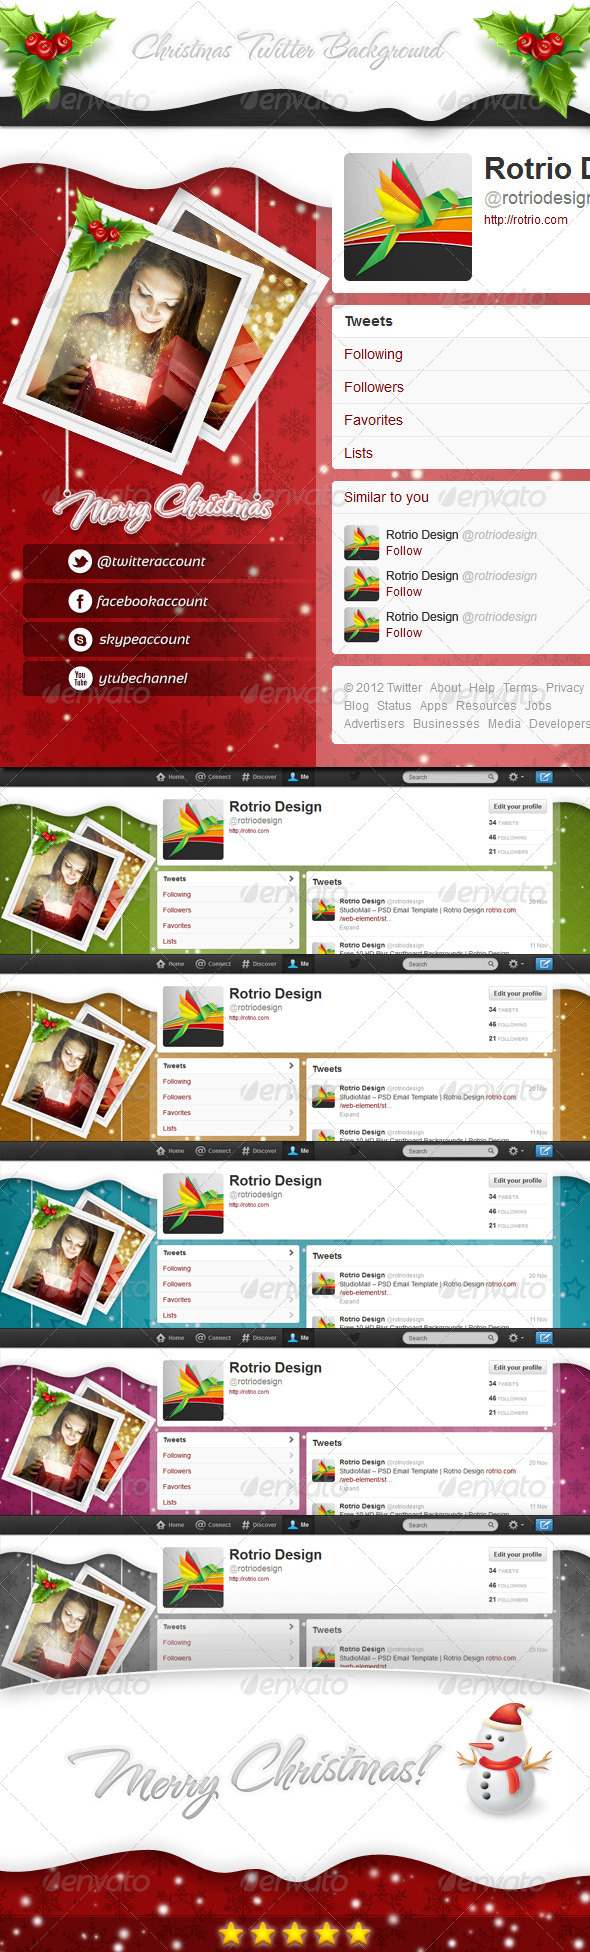 GraphicRiver Christmas Twitter Background 3519376